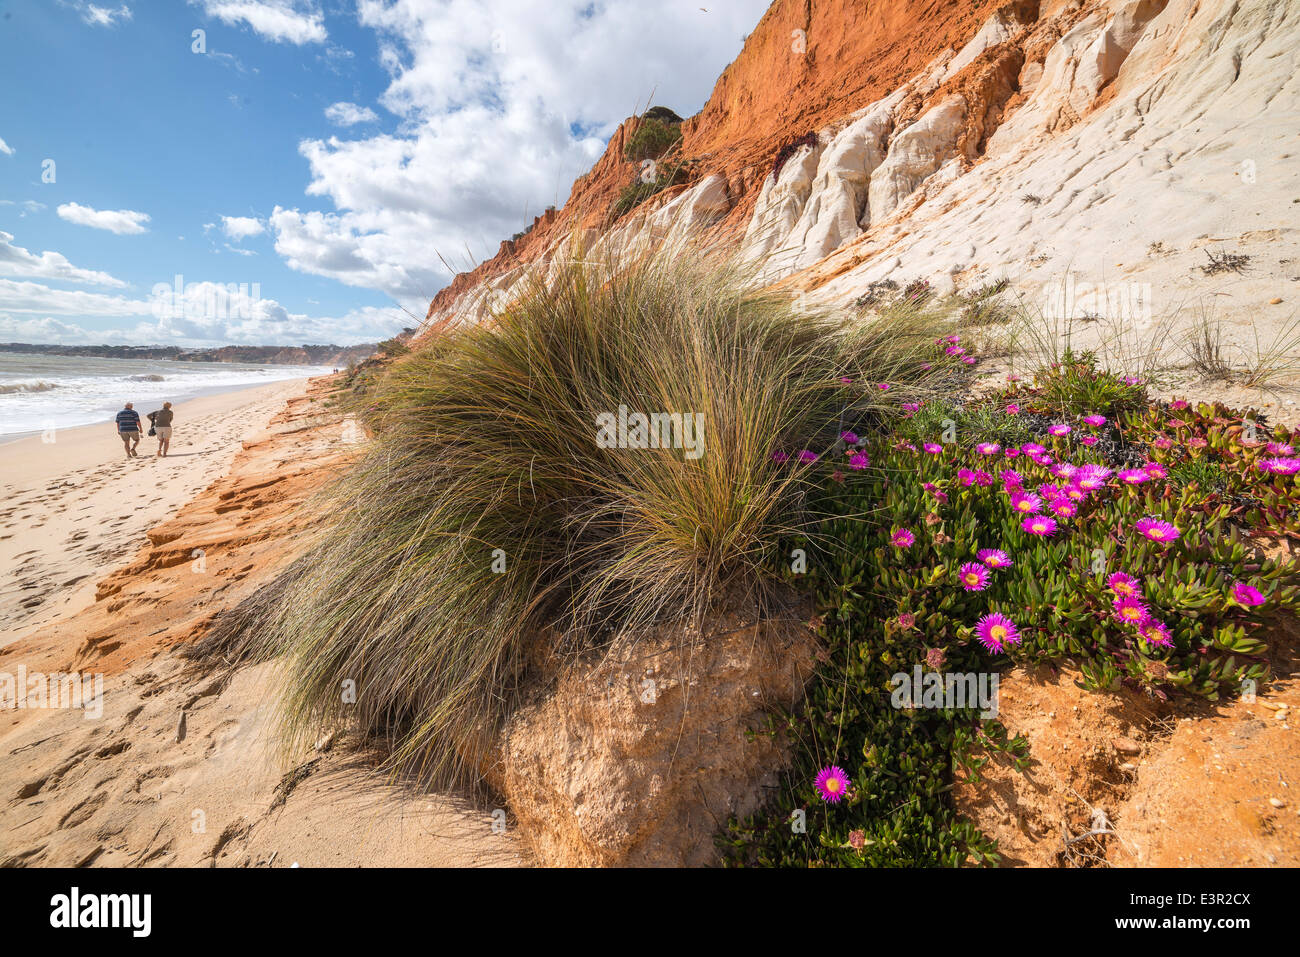 Mesembryanthemum, AKA Ice plant, on Praia de Falesia beach between Vilamoura and Albufeira on the Algarve, Portugal. - Stock Image